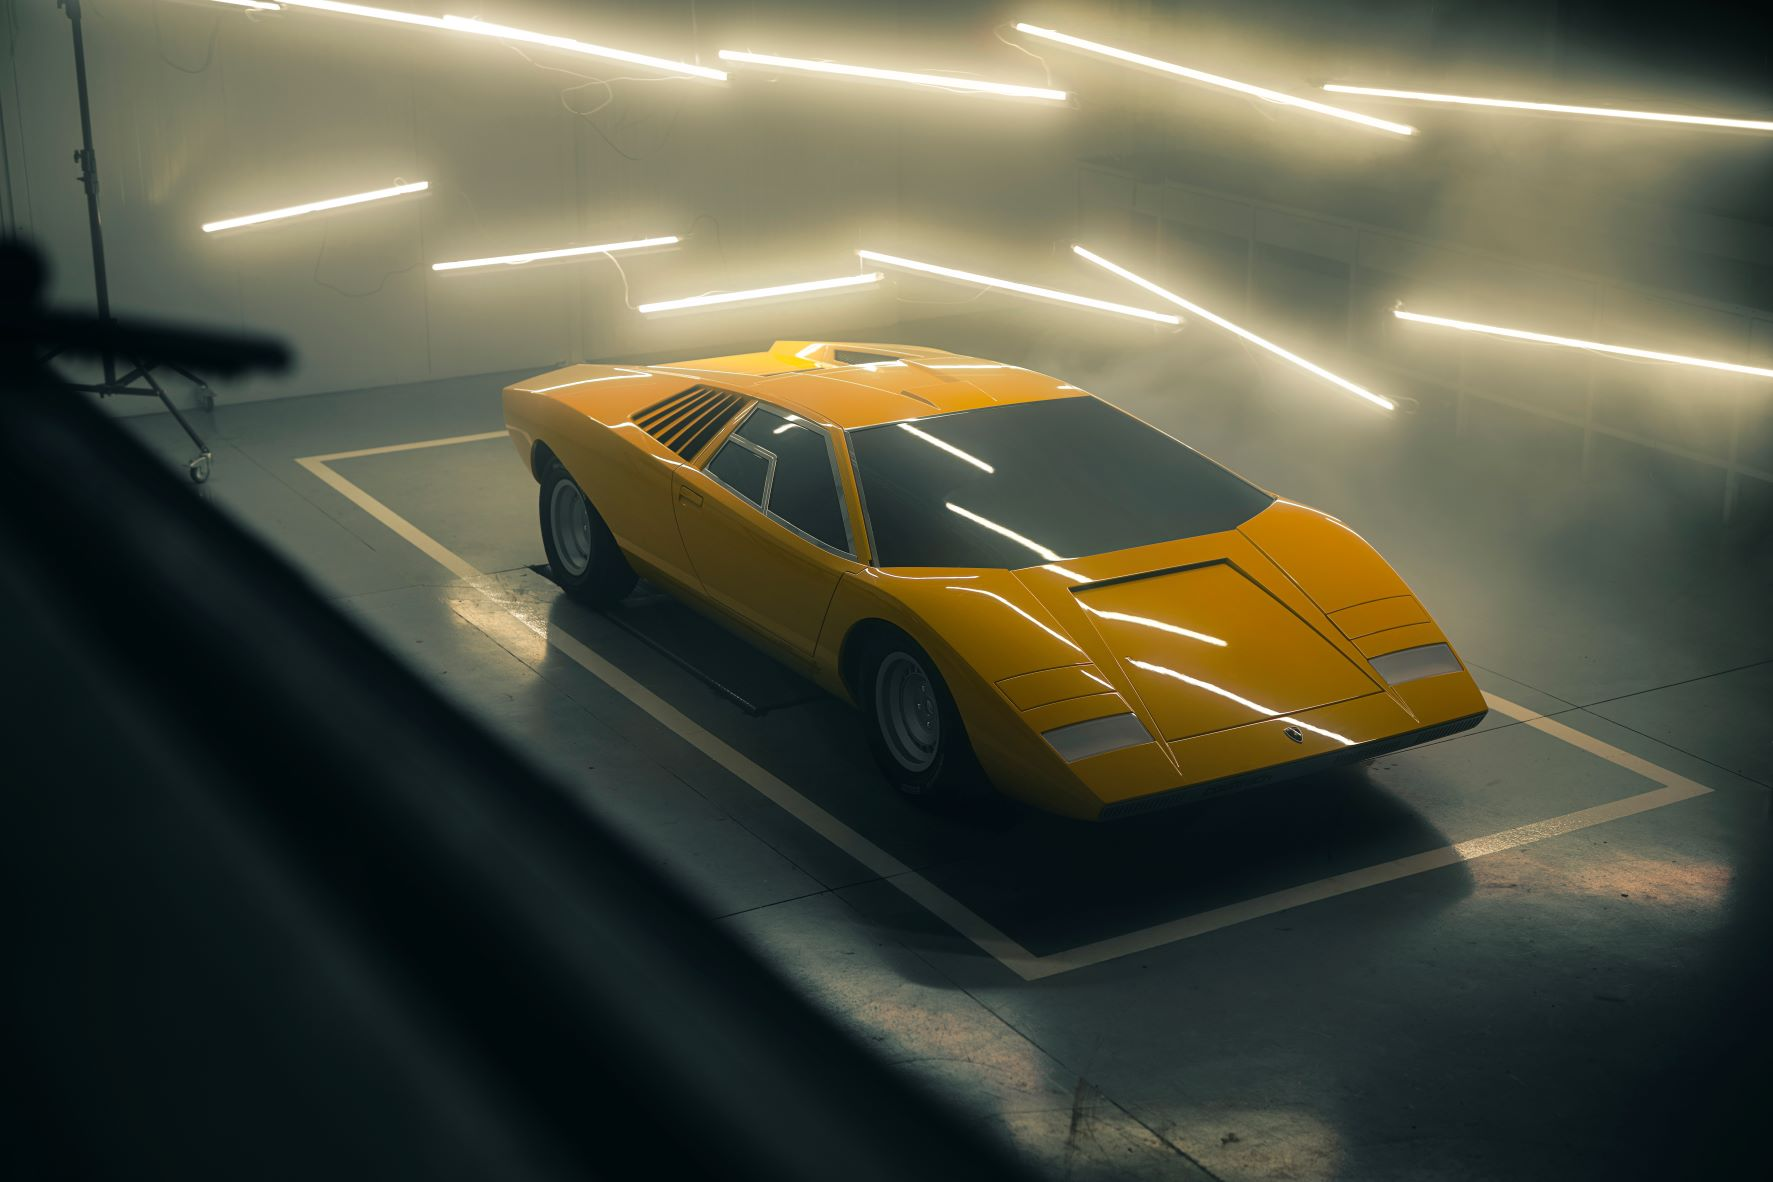 Lamborghini's recreation of the iconic Countach serial number 1